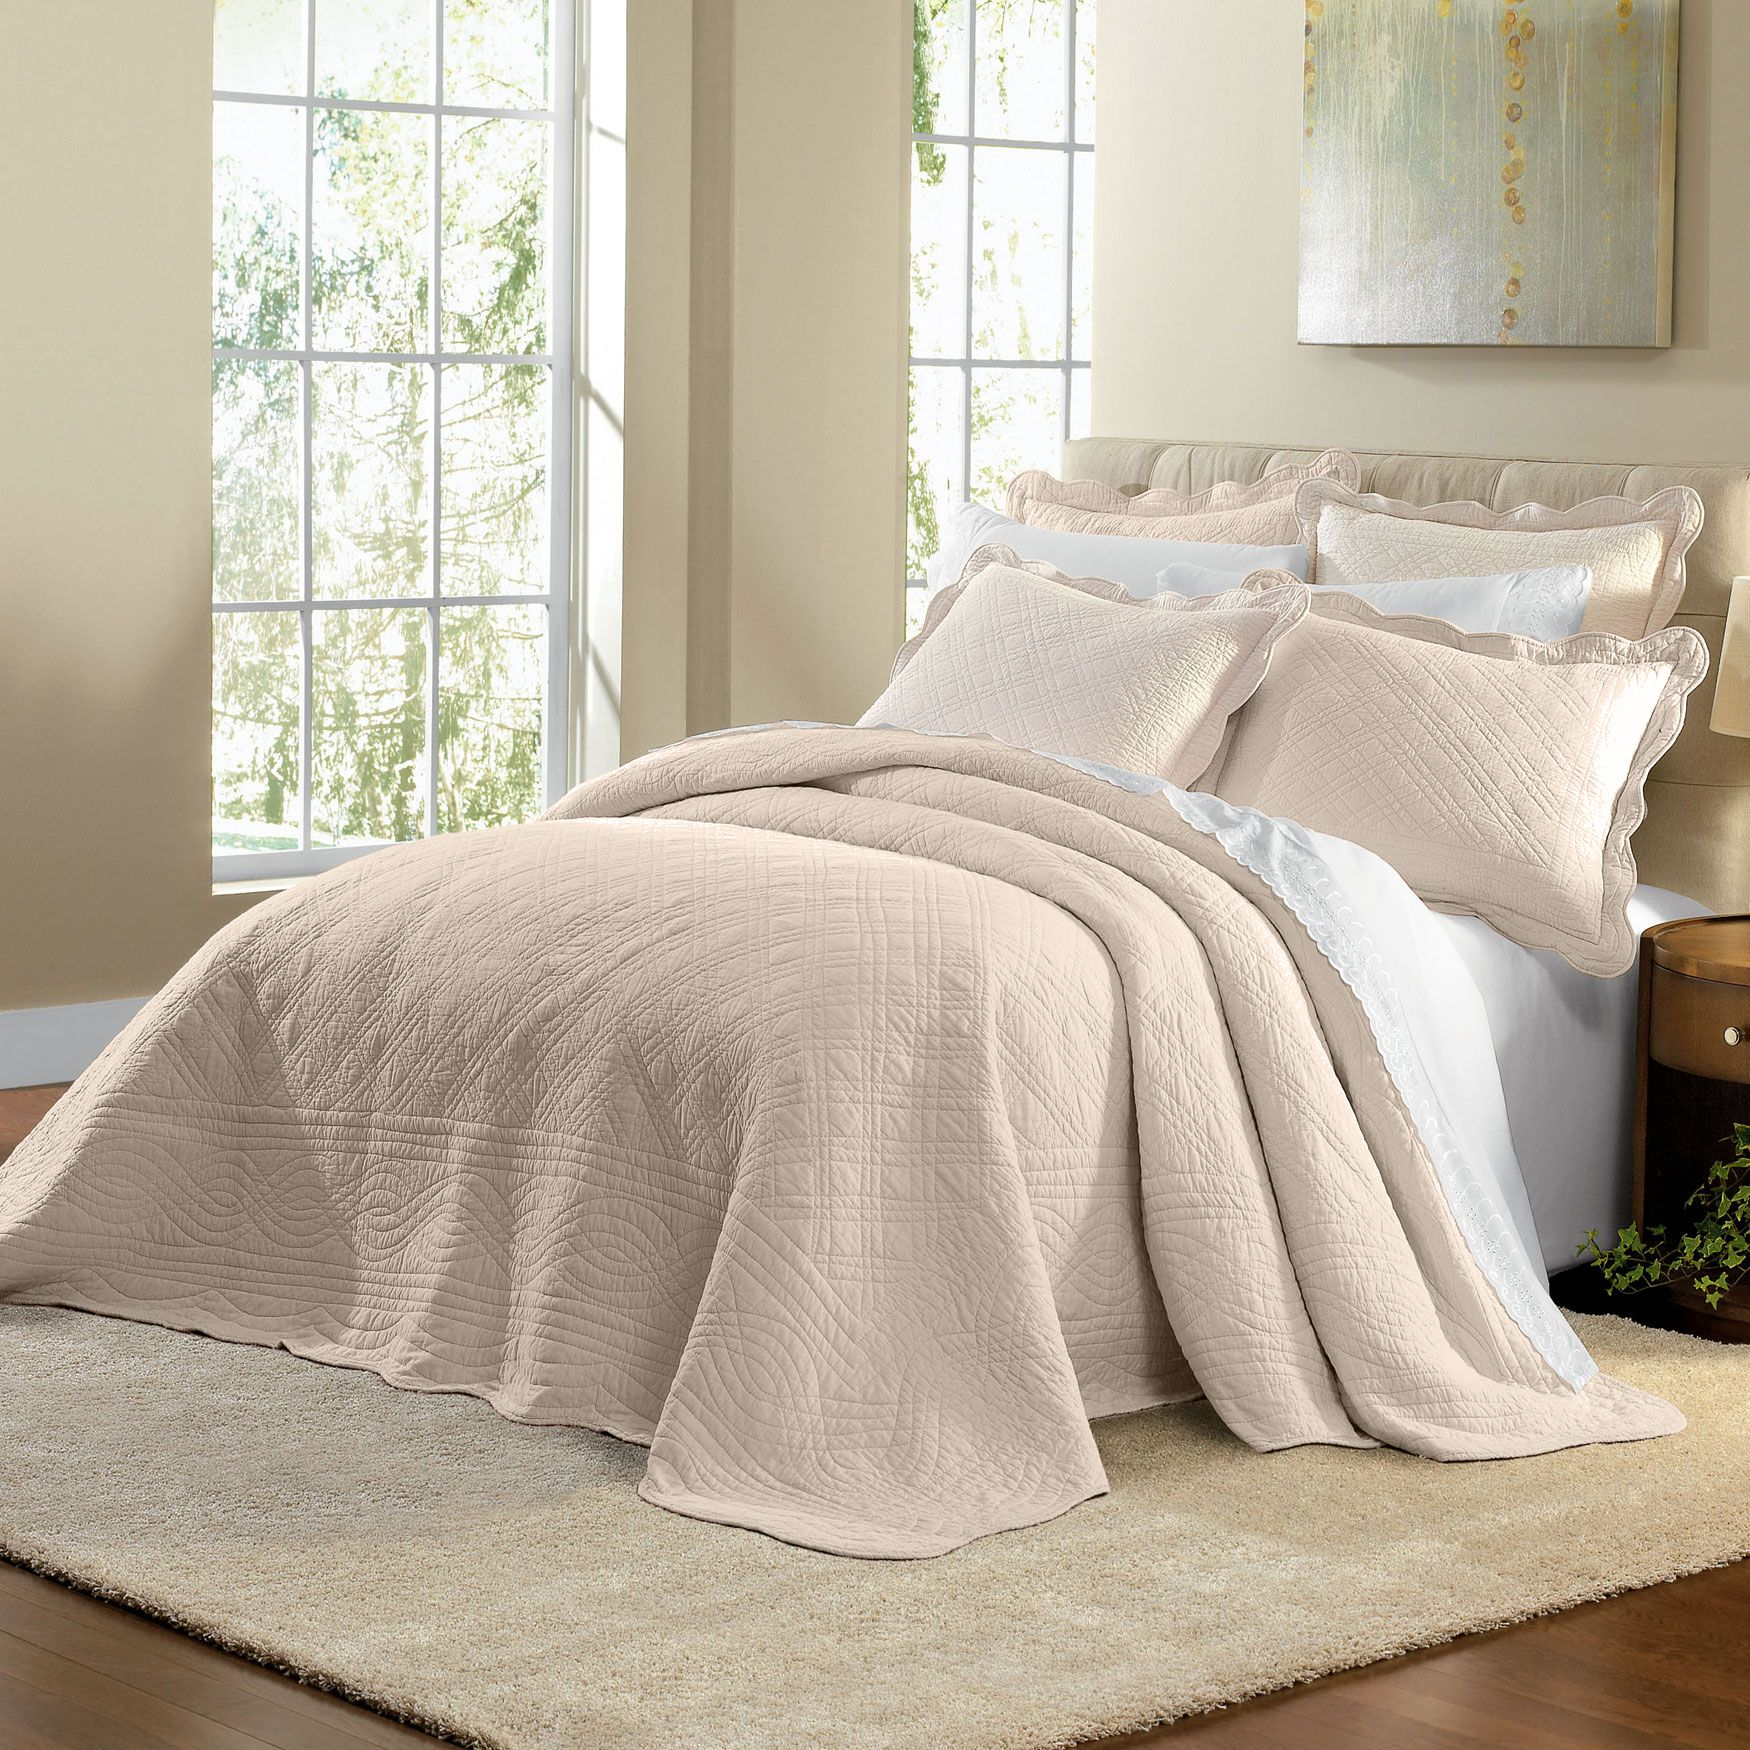 grey down comforters sparkling oversized kingforter quilts bedspread quilt measurements amazon master comforter white pinterest king